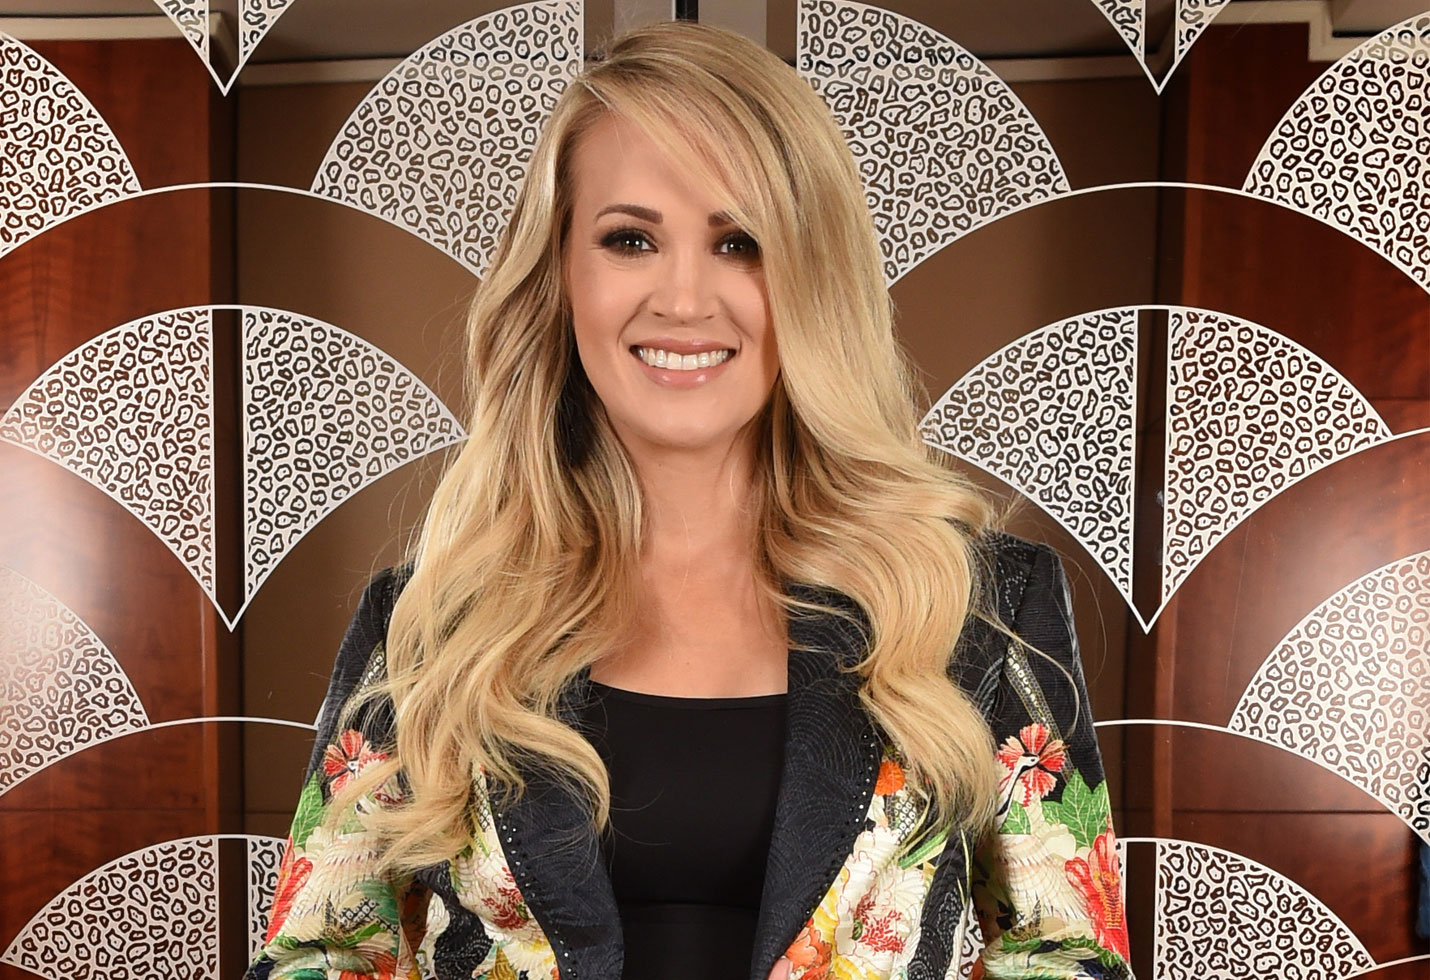 Carrie Underwood Cry Pretty pregnant billboard